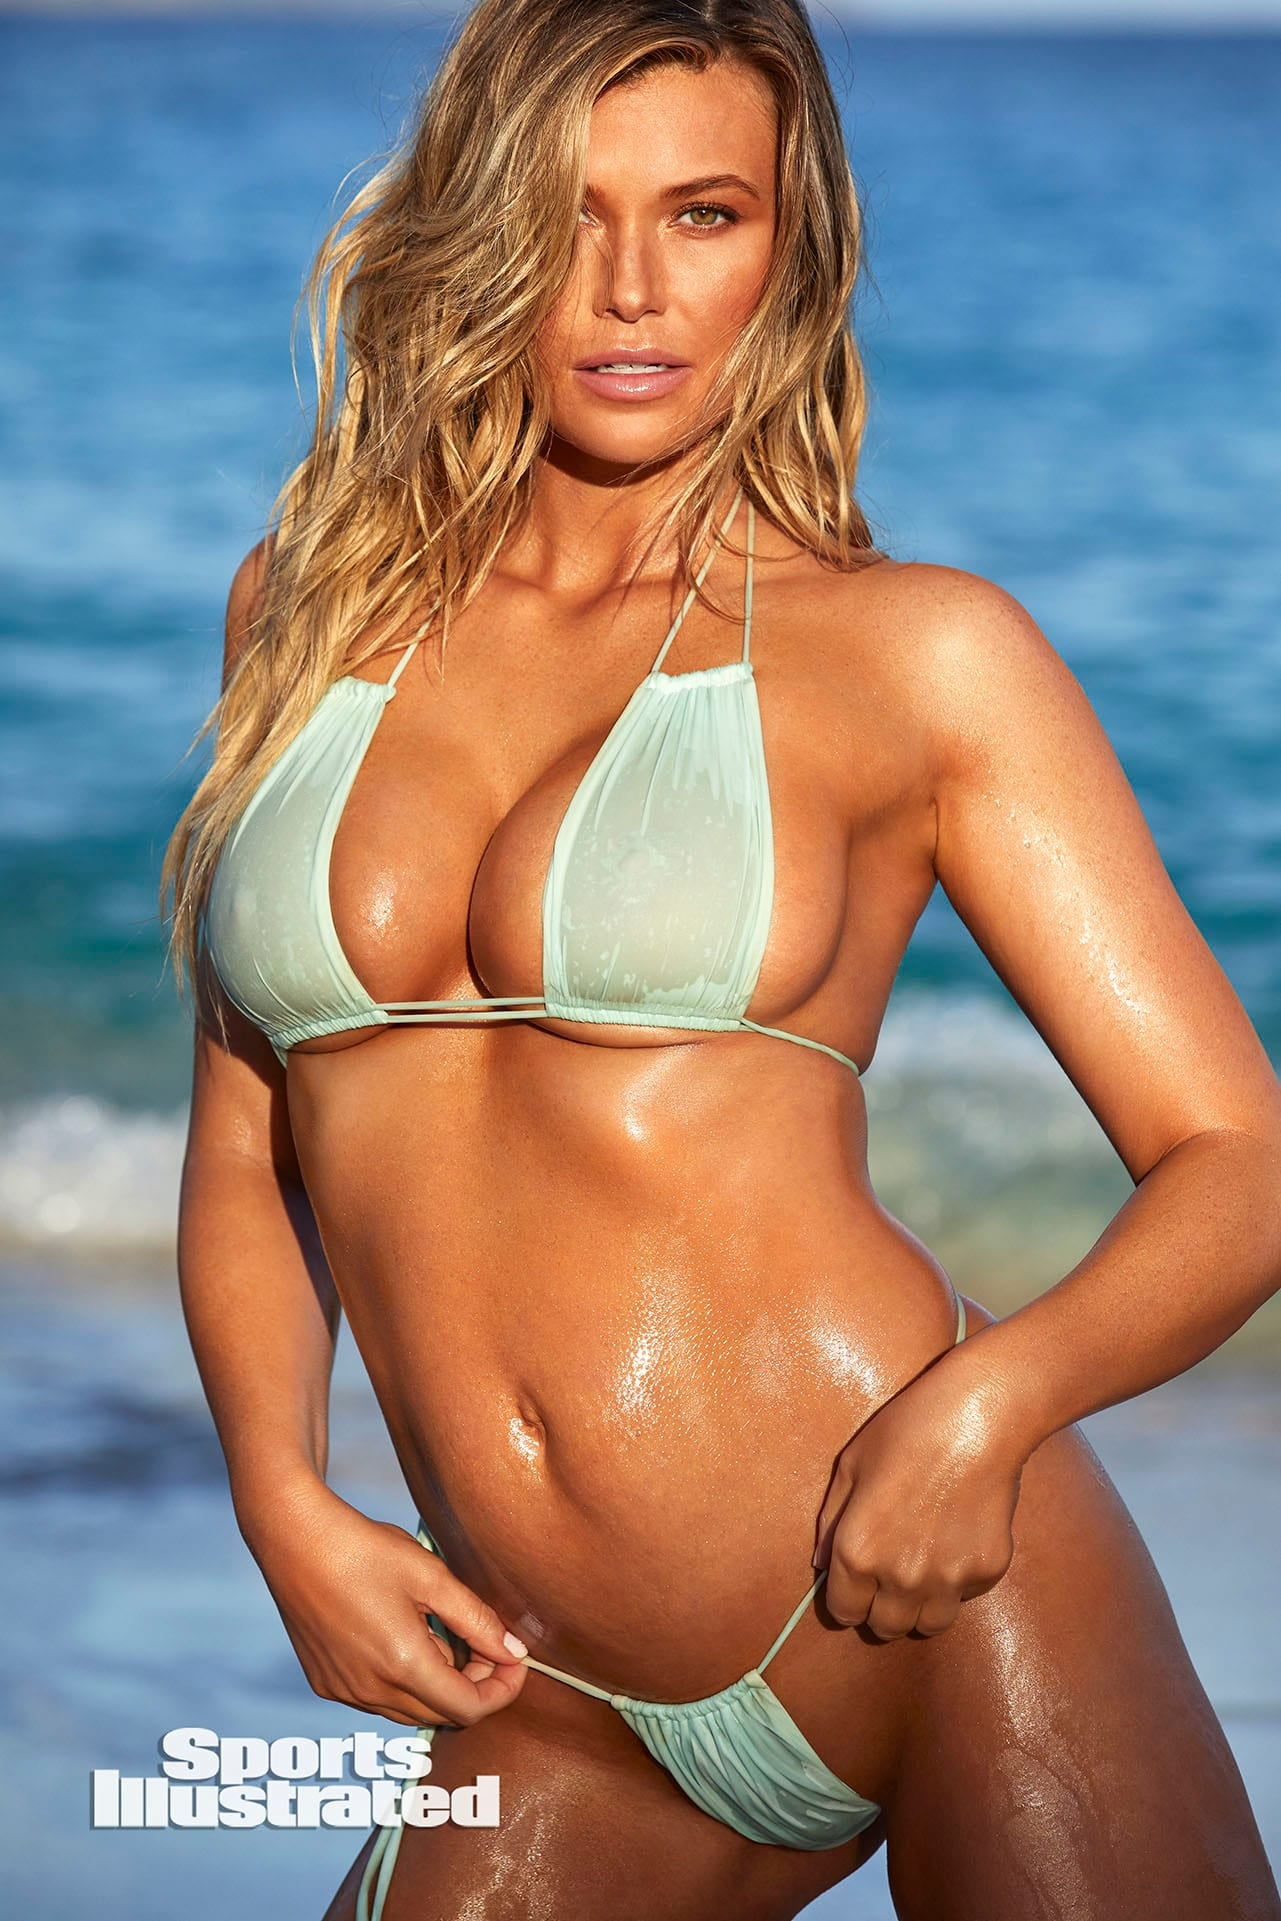 Nina Agdal Nude in the 2014 Sports Illustrated Swimsuit Issue   That Dogs Blog